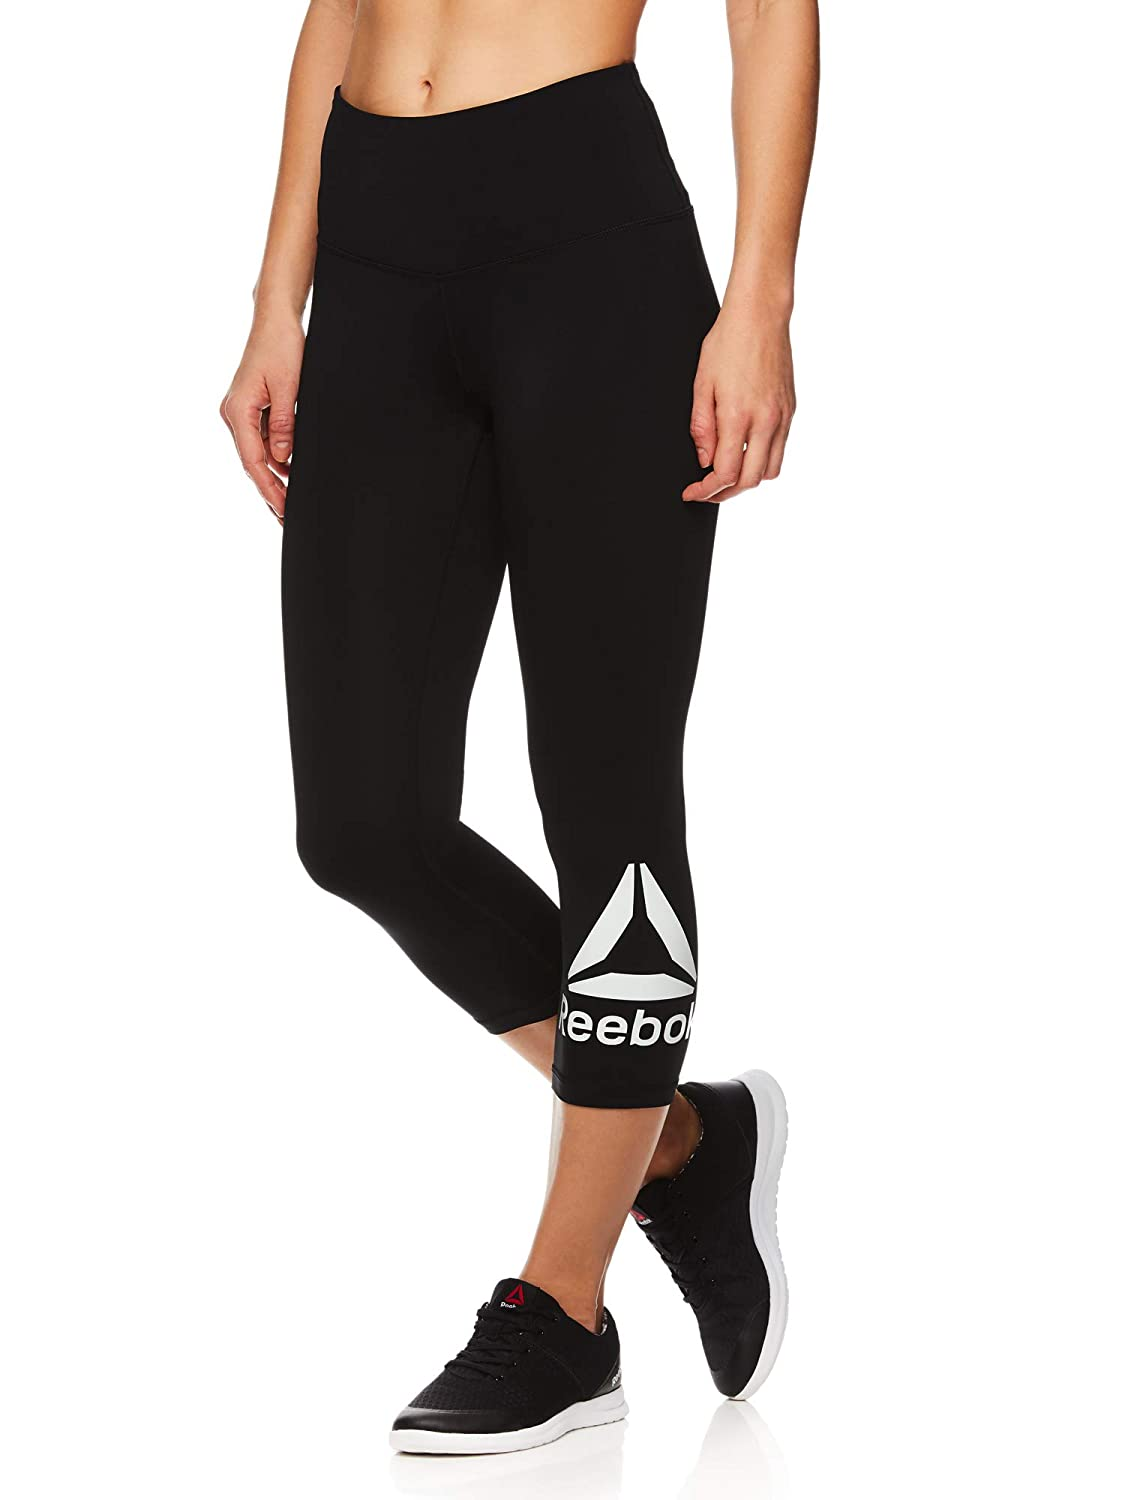 Cropped Performance Compression Tights Reebok Womens Capri Workout Leggings w//High-Rise Waist